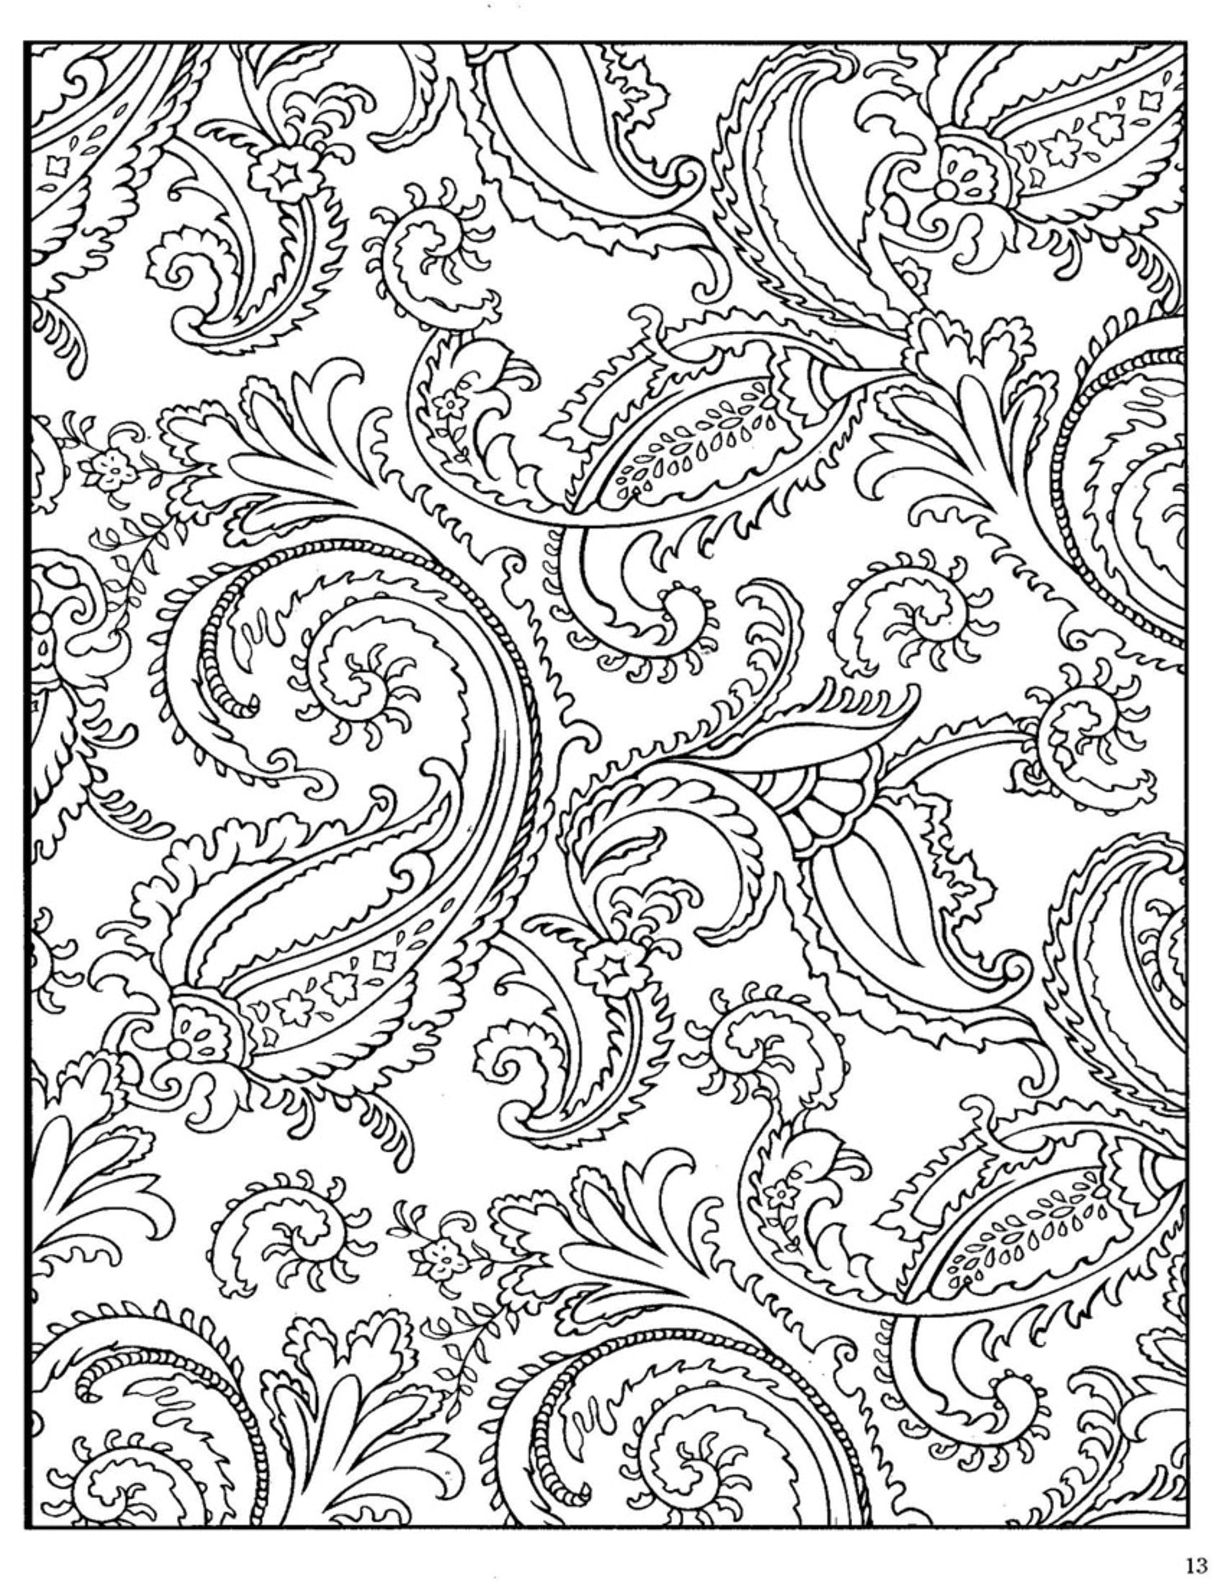 paisley print coloring pages 21 of the best ideas for paisley printable coloring pages paisley coloring pages print